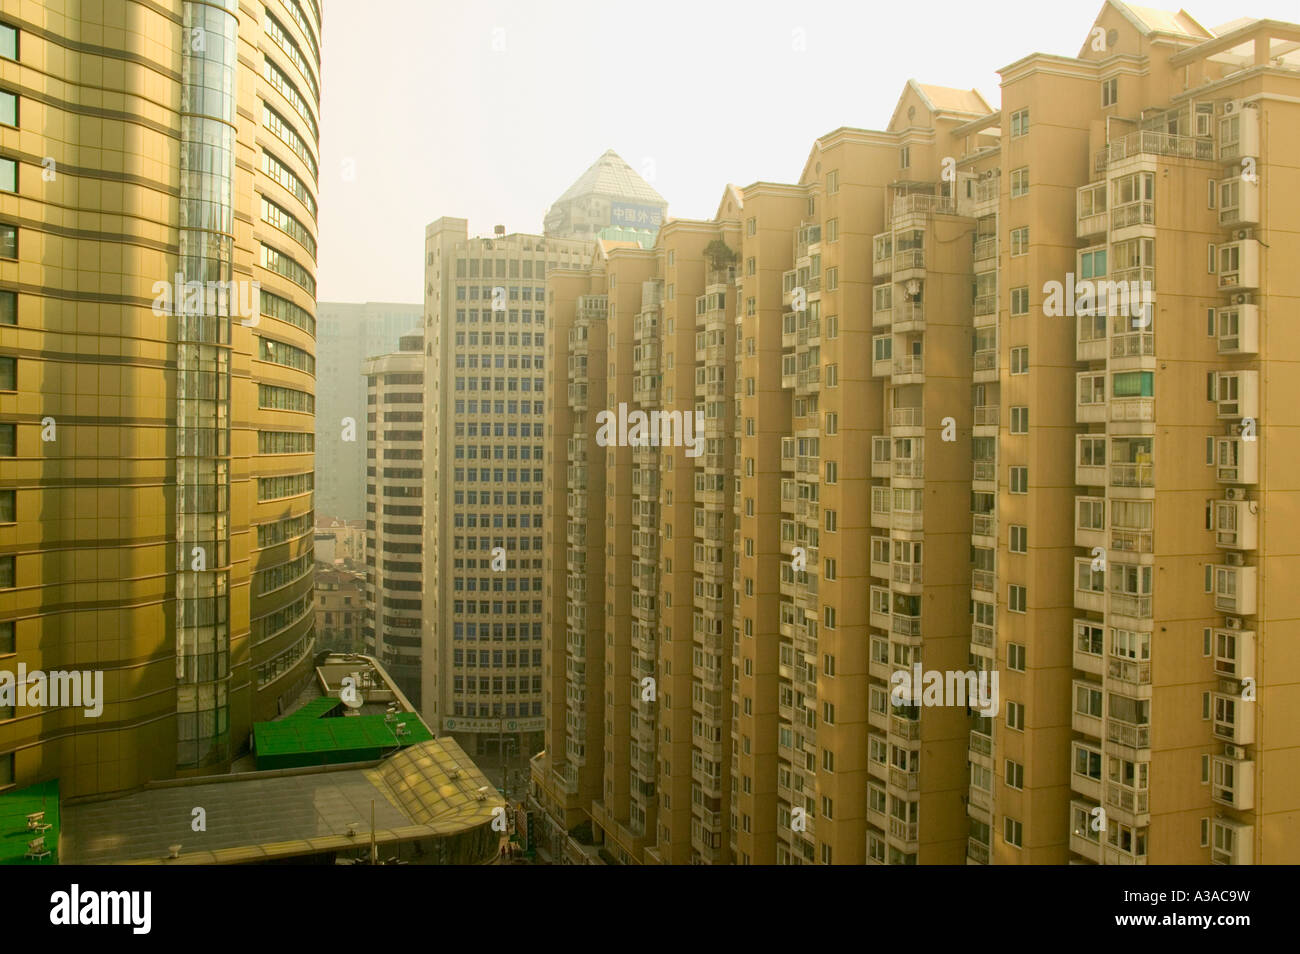 High Rise apartment complex, Shanghai, China - Stock Image